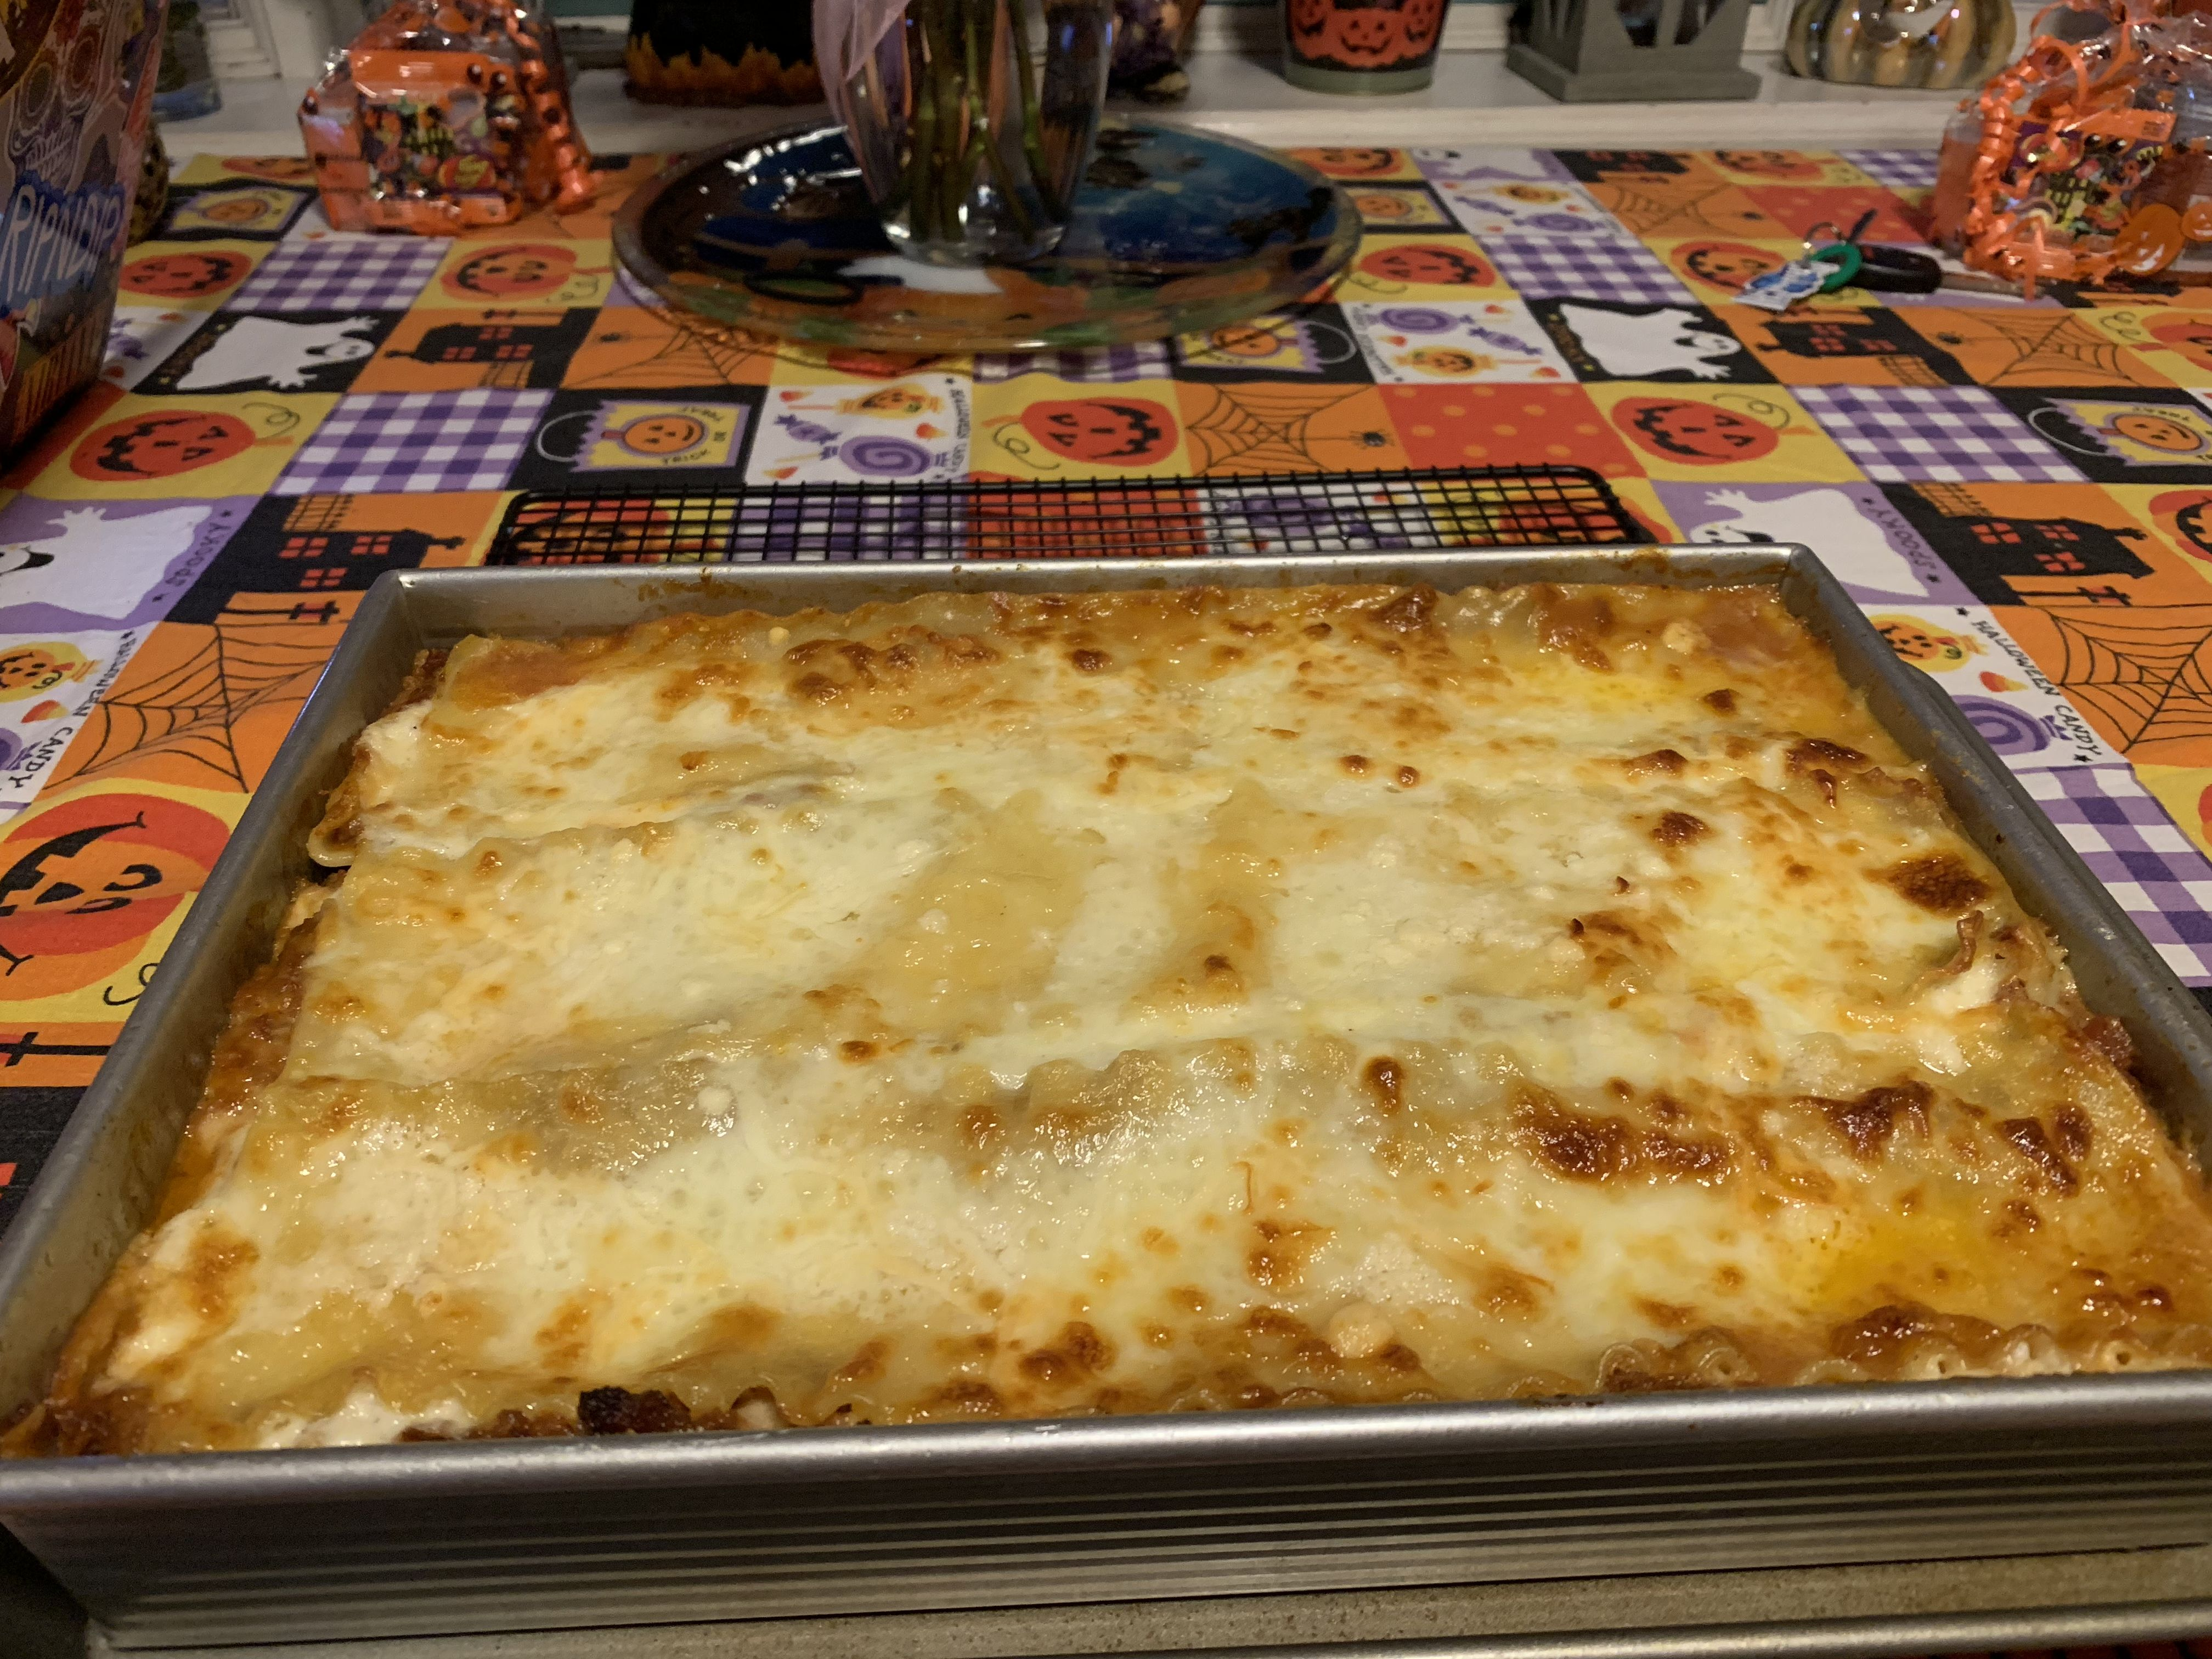 Tremendous Lasagna With Cottage Cheese No Ricotta My Recipes In Home Interior And Landscaping Ologienasavecom